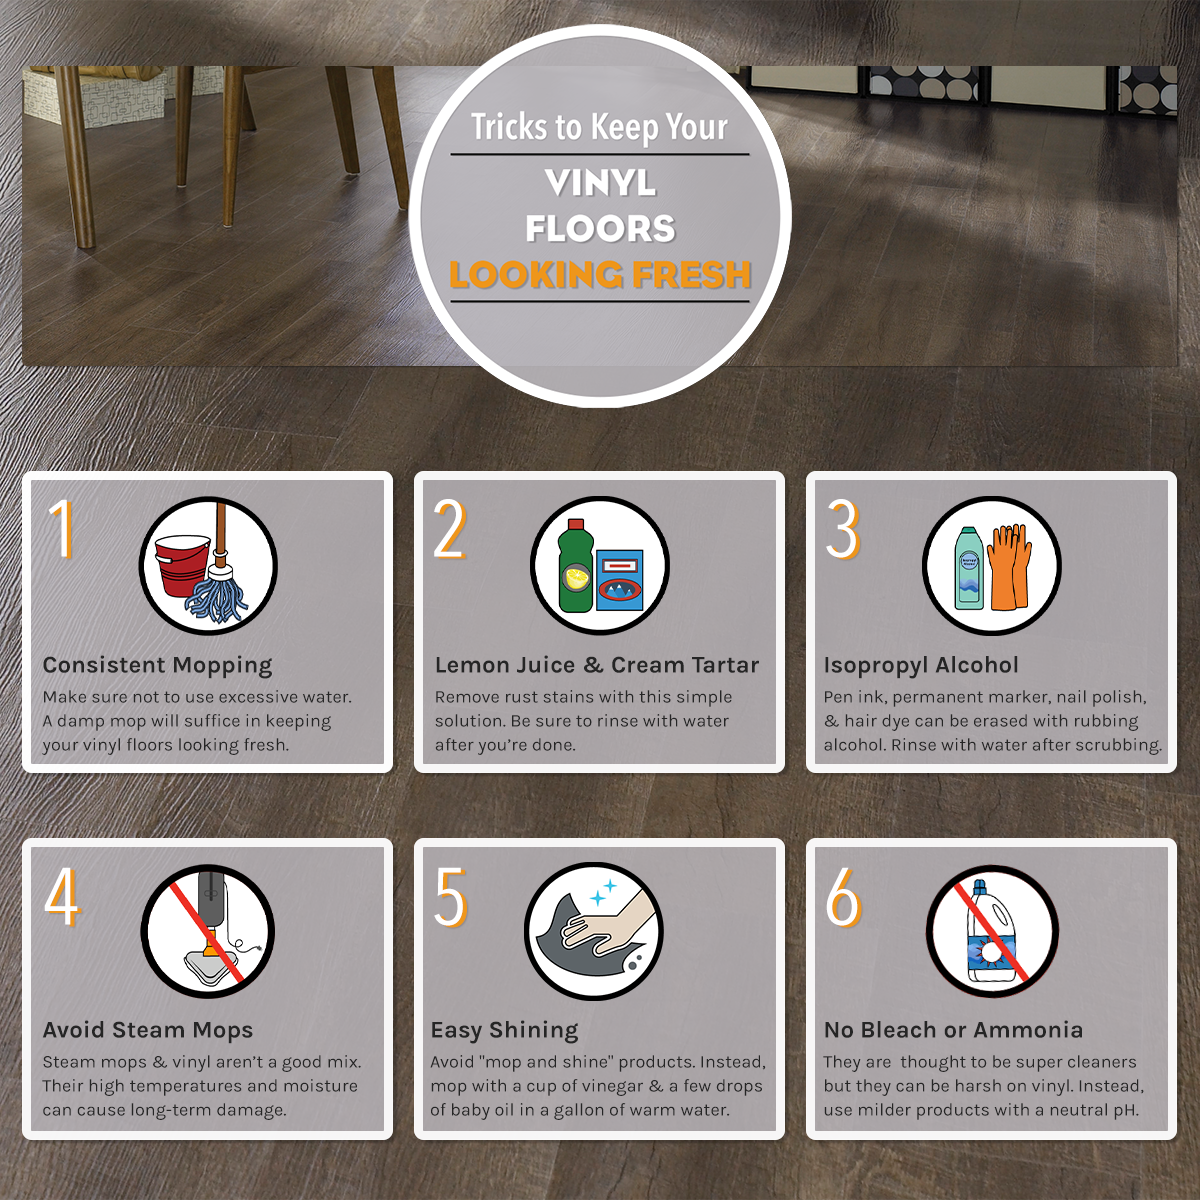 Clean Your Vinyl Floors The Easy Way With These Quick Tricks From Empire Today Vinyl Flooring Carpet Installation Flooring